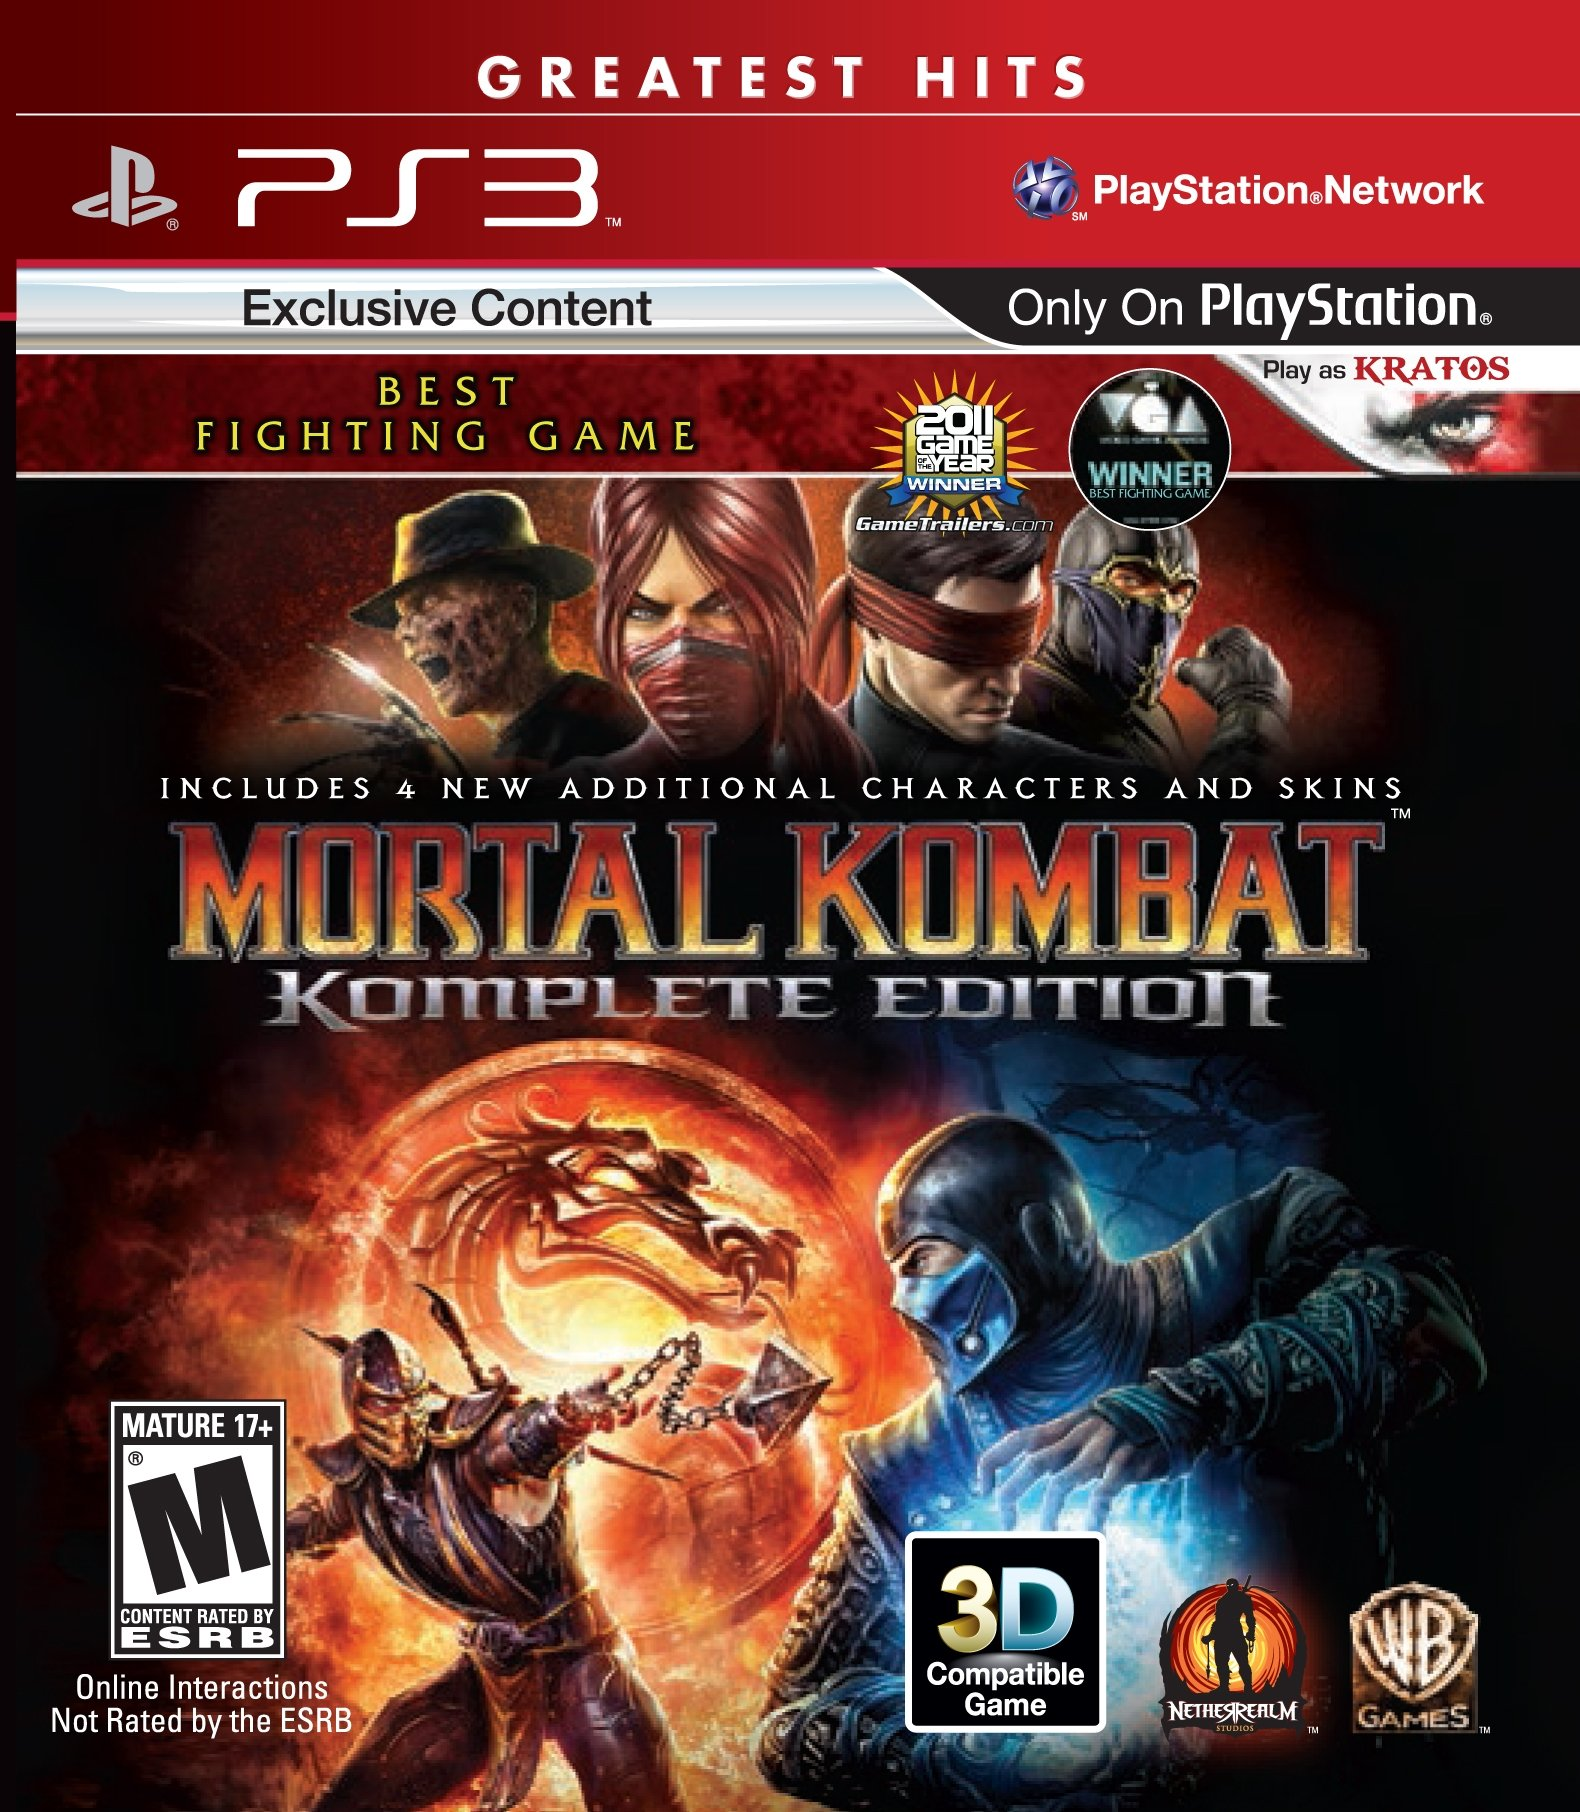 Cover Xbox Ufc Undisputed moreover Cover Xbox Two Worlds further Gow Ii in addition Cover Ps Mortal Kombat Komplete Edition also Cover Ds Bakugan Battle Brawlers Defenders Of The Core. on minecraft xbox 360 edition cover